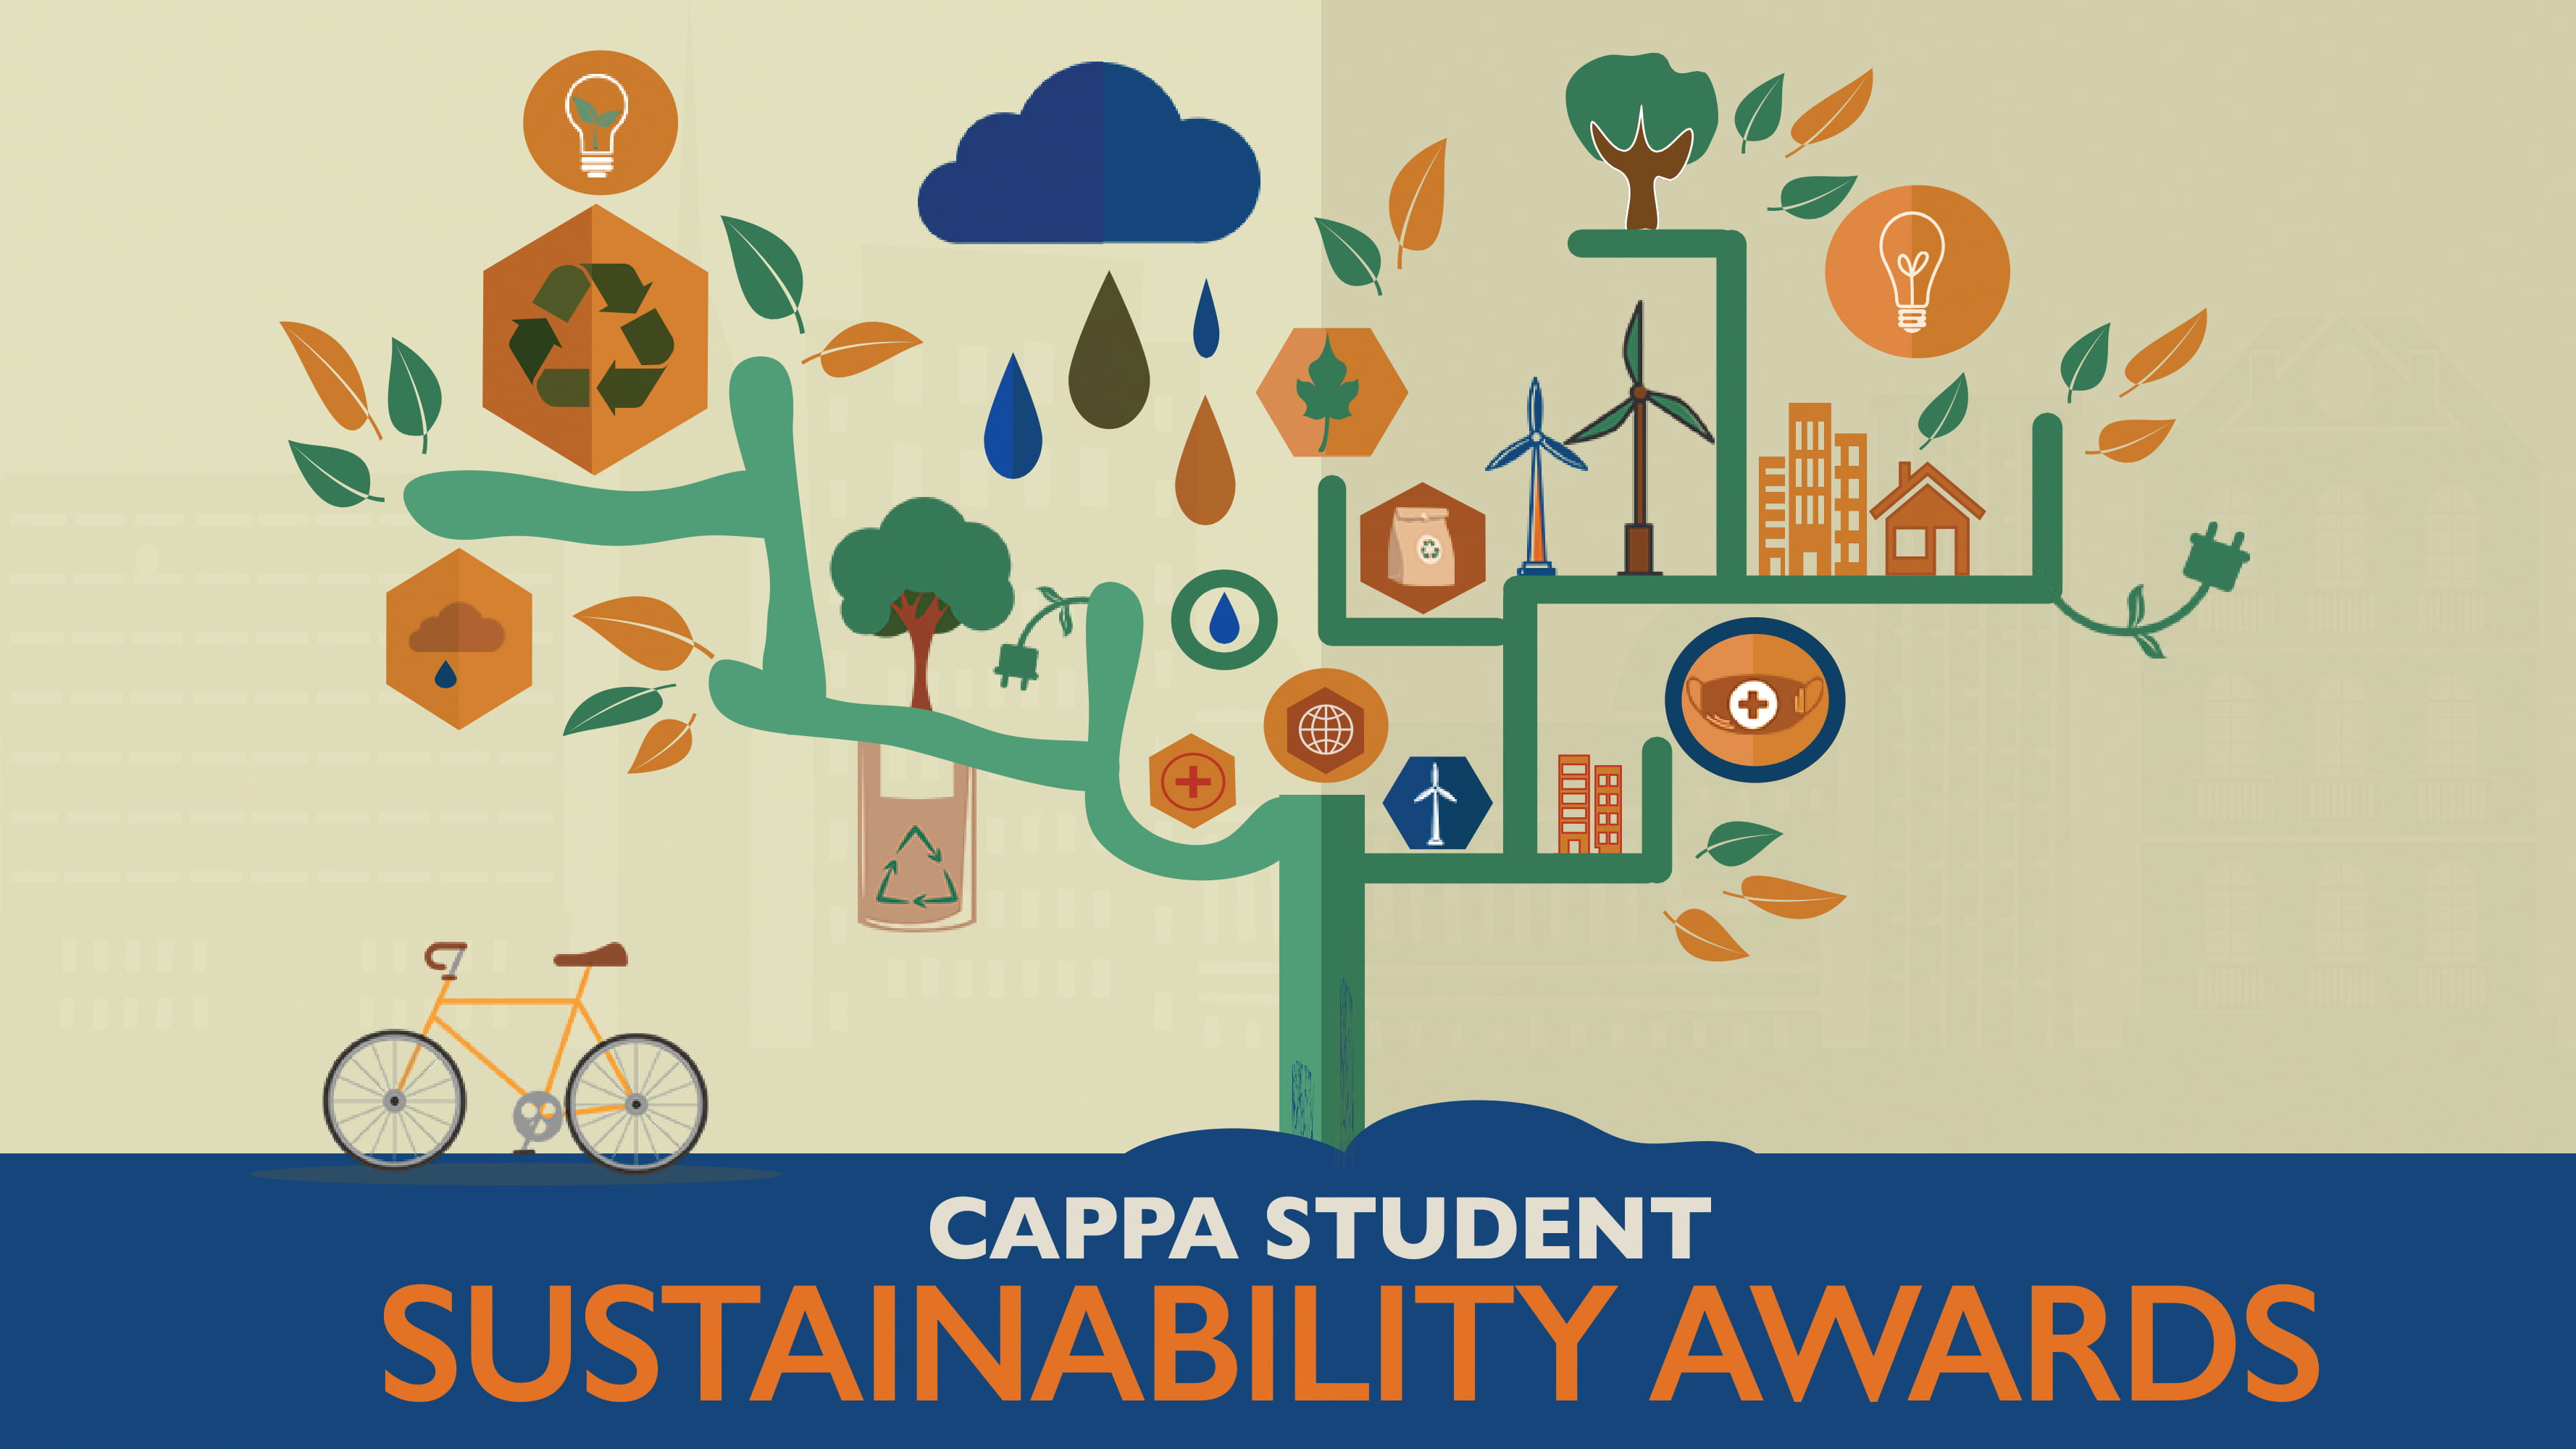 Cappa student sustainability awards graphic banner